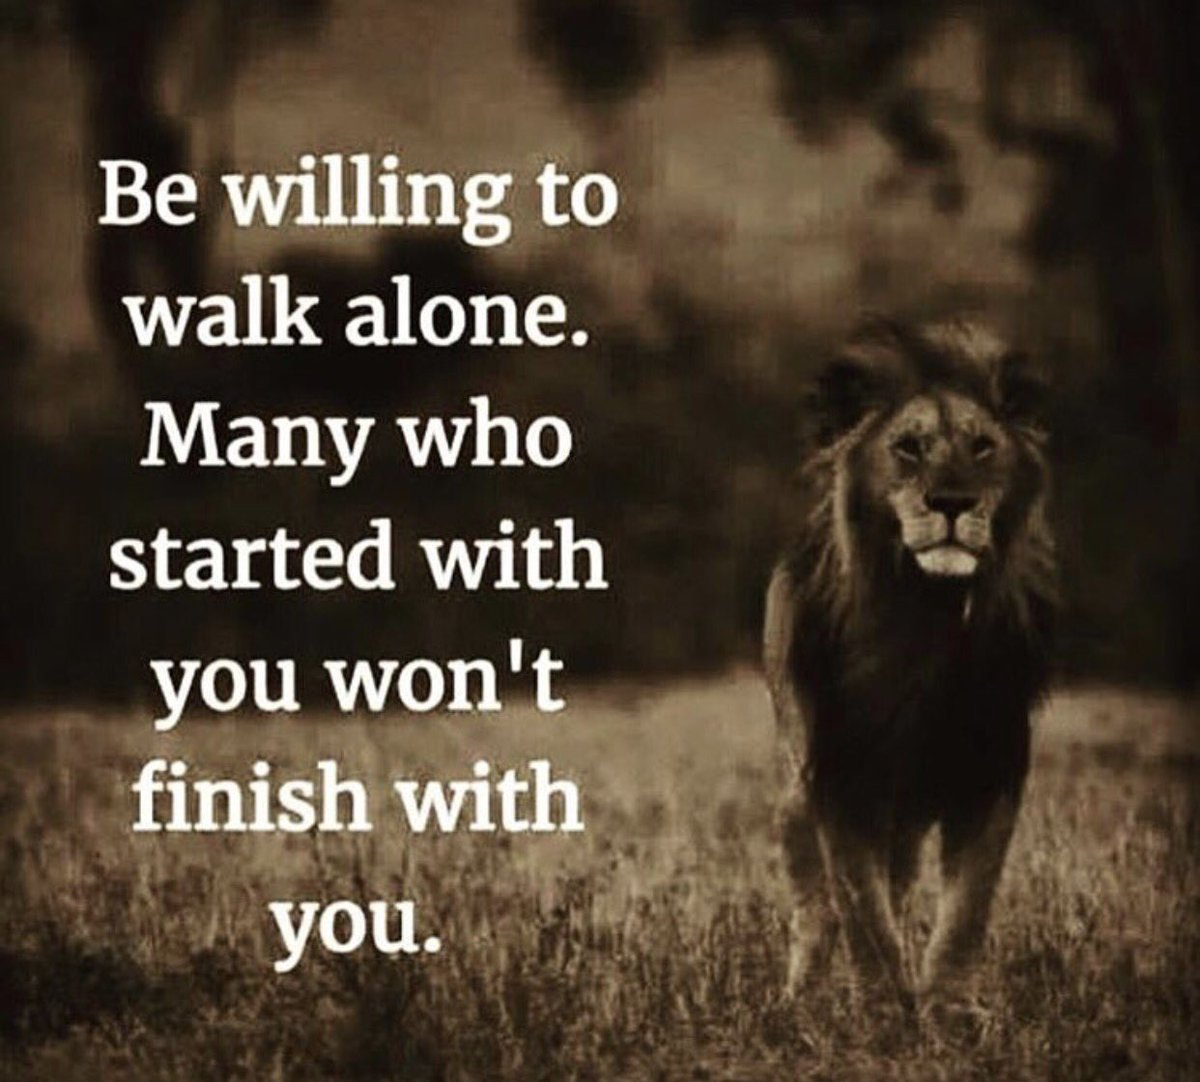 Нˆð§ð¬ð©ð¢ð«ðšðð¢ð¨ð§ðšð¥ Нð®ð¨ððžð¬ On Twitter Be Willing To Walk Alone Many Who Started With You Won T Finish With You Quotes